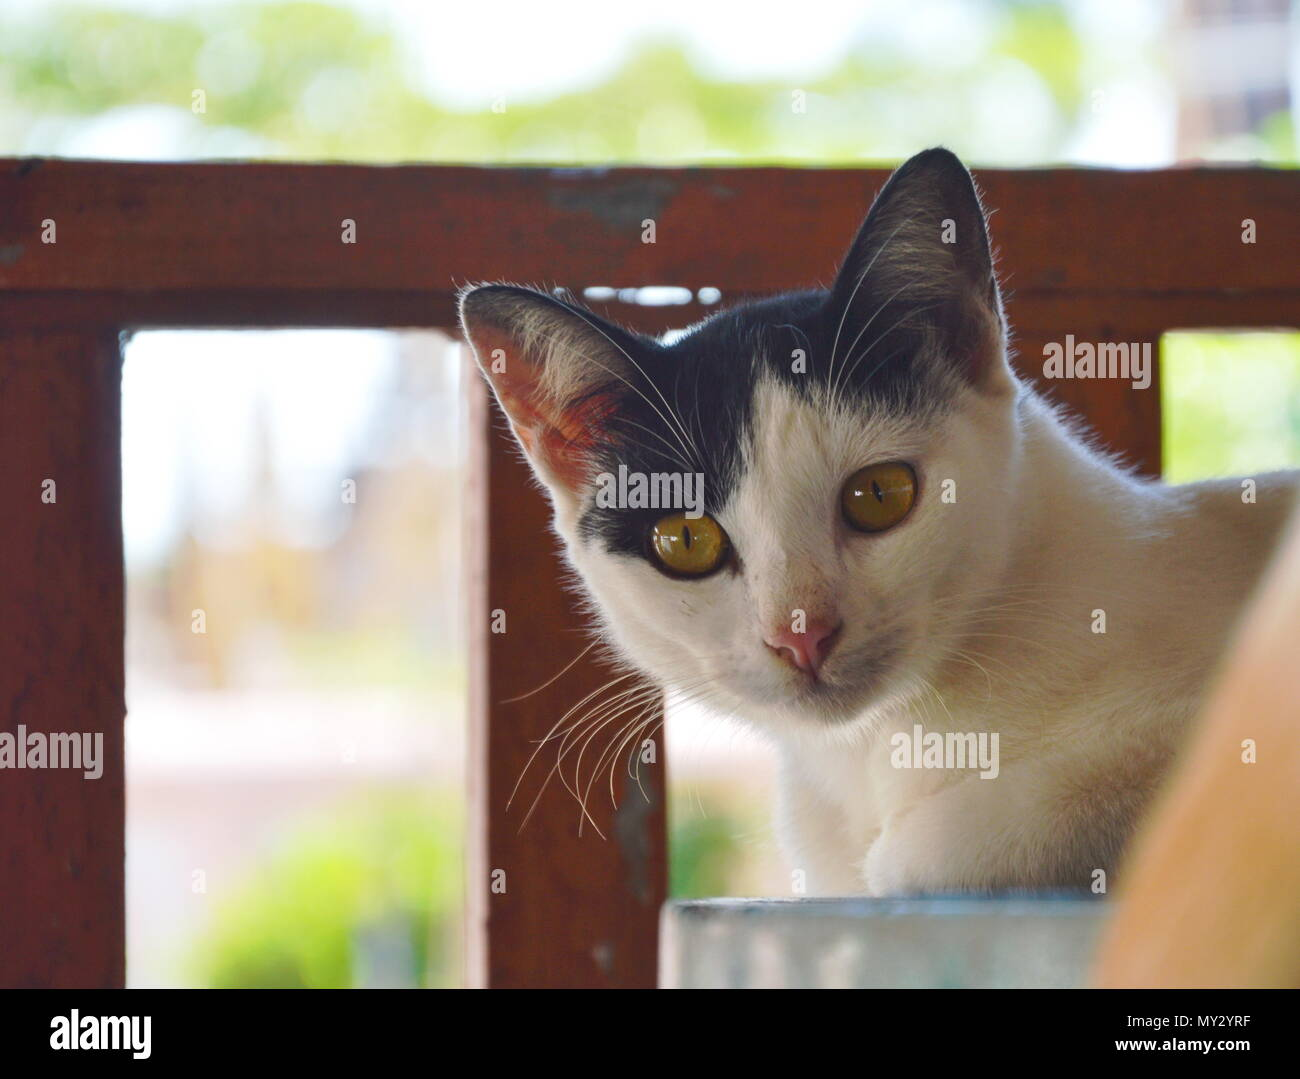 black and white cat on the table - Stock Image